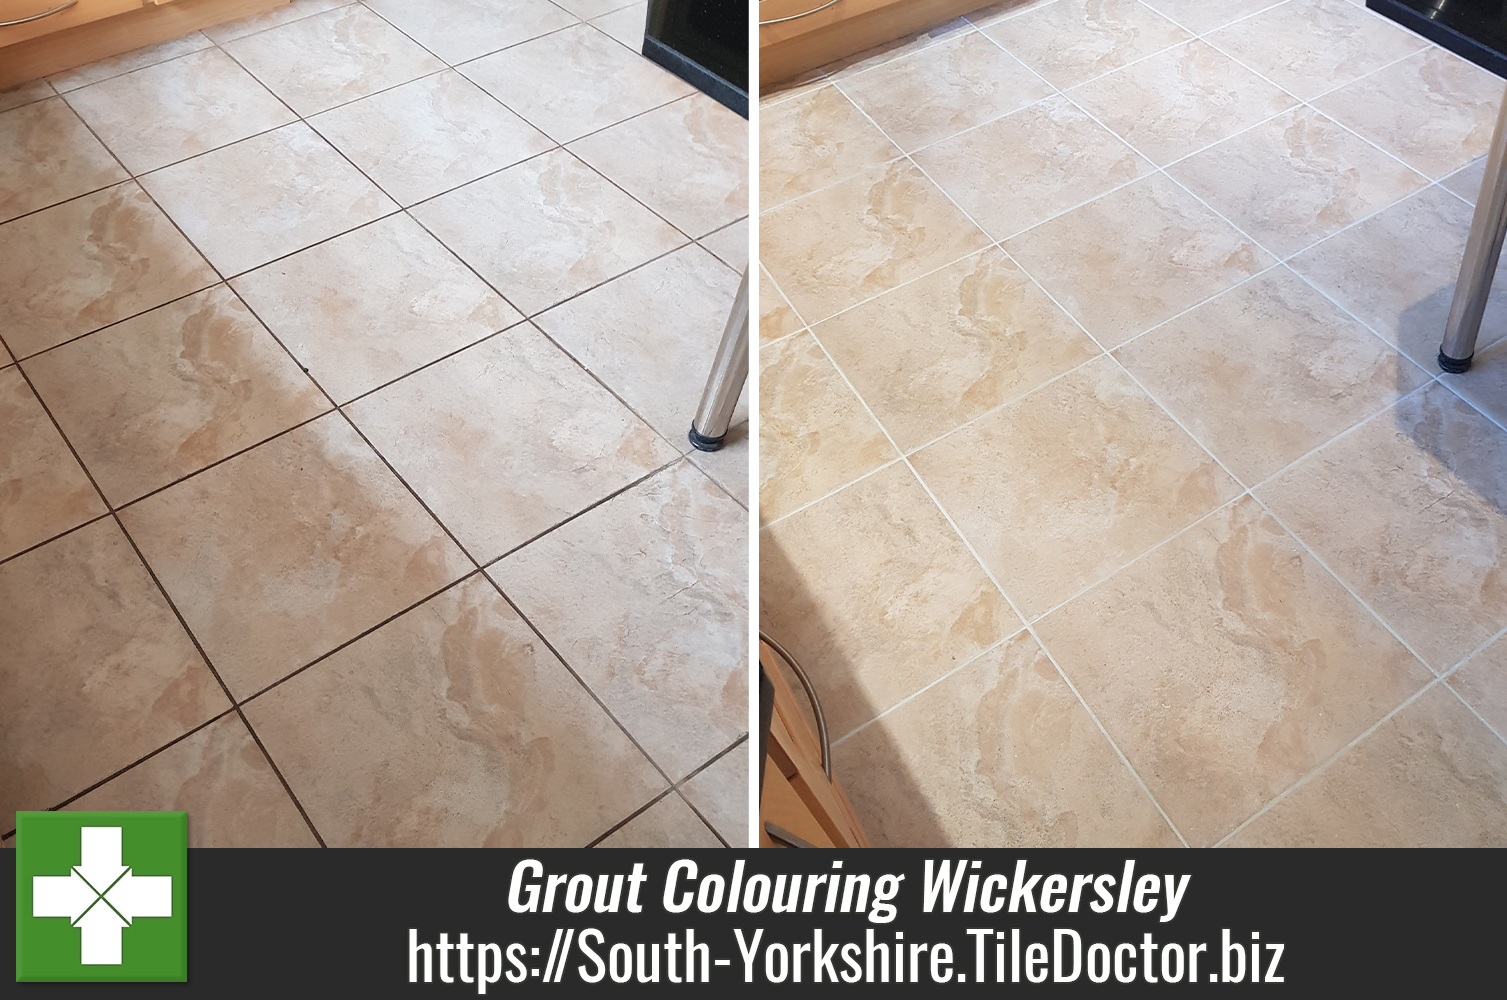 Light Grey Grout Re-Colouring in a Wickersley Kitchen